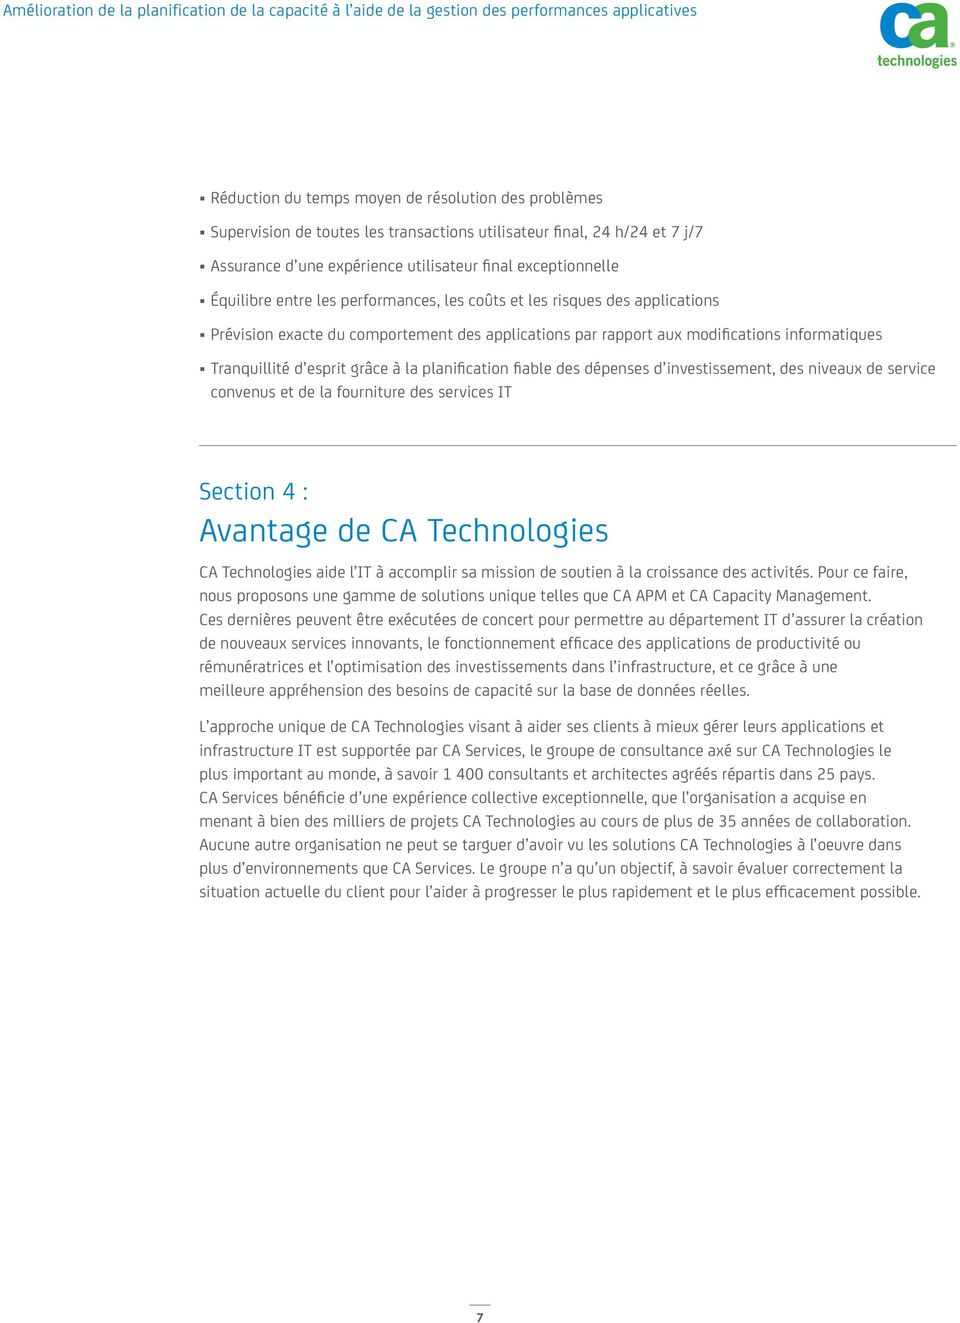 planification fiable des dépenses d investissement, des niveaux de service convenus et de la fourniture des services IT Section 4 : Avantage de CA Technologies CA Technologies aide l IT à accomplir